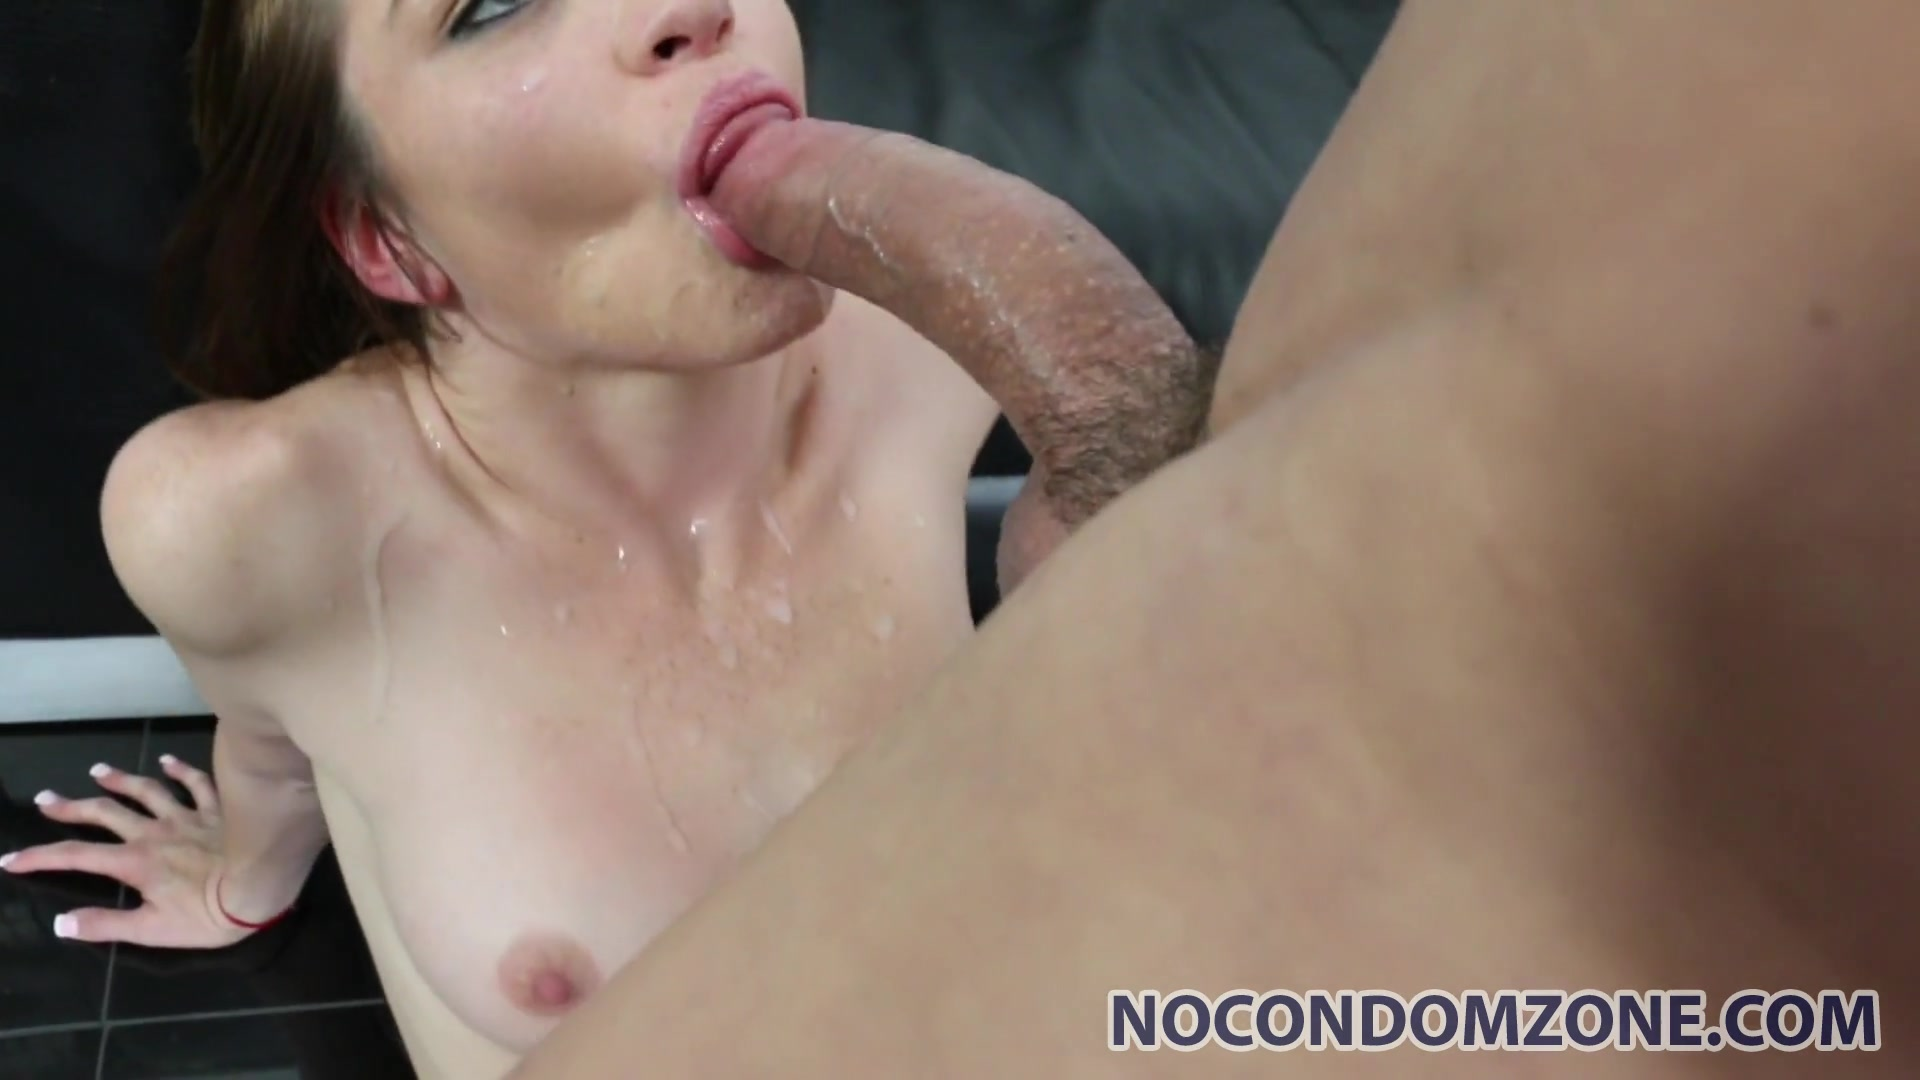 Emma Stoned - No Condom Zone